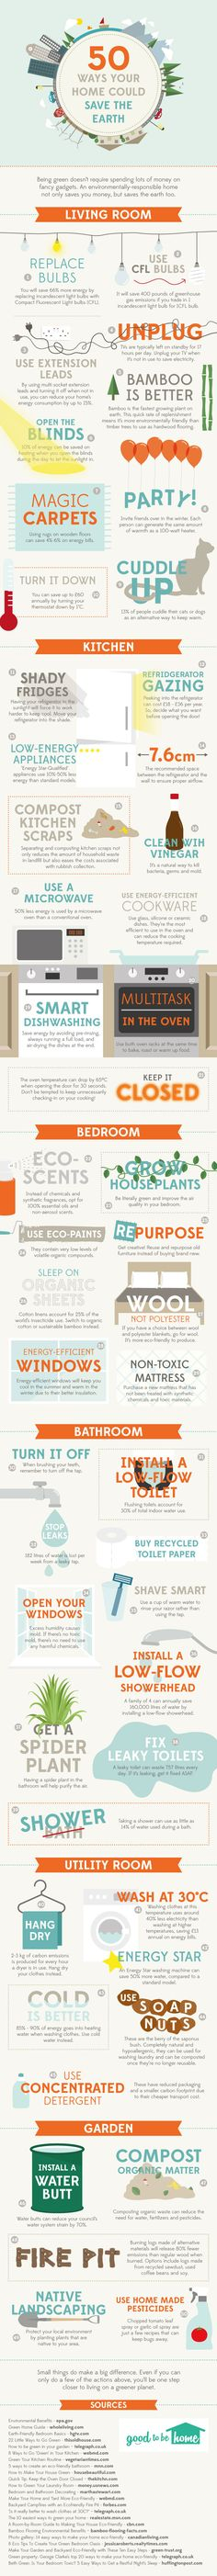 50 Ways your Home can Save the Earth - A Good to be Home Infographic